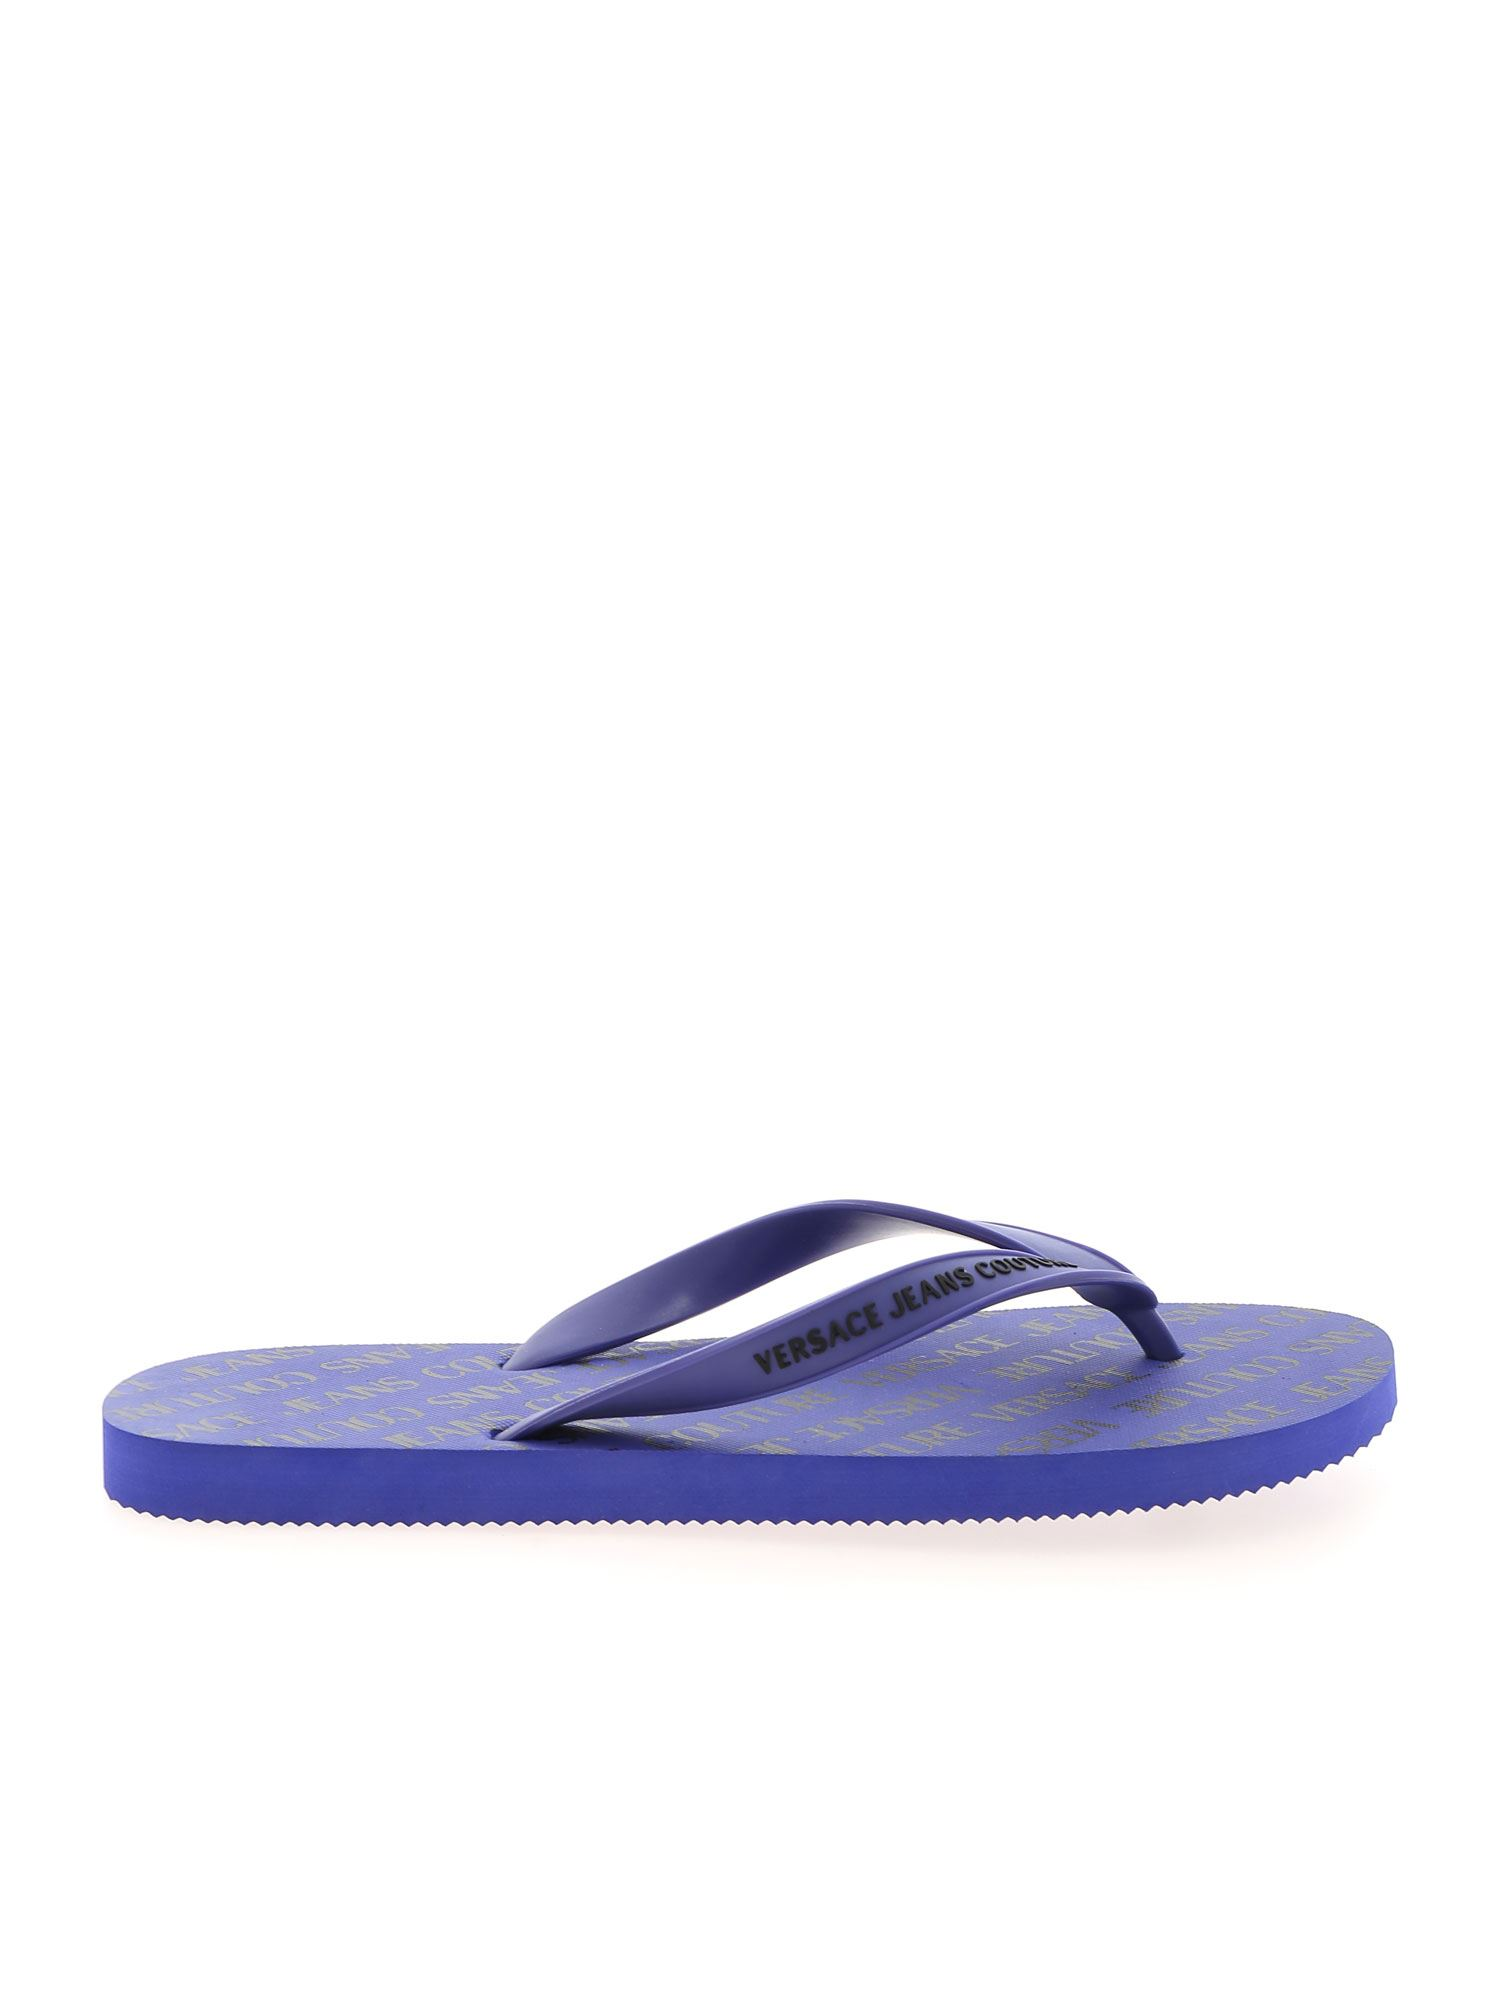 Versace Jeans Couture LOGO LETTERING SLIPPERS IN PURPLE